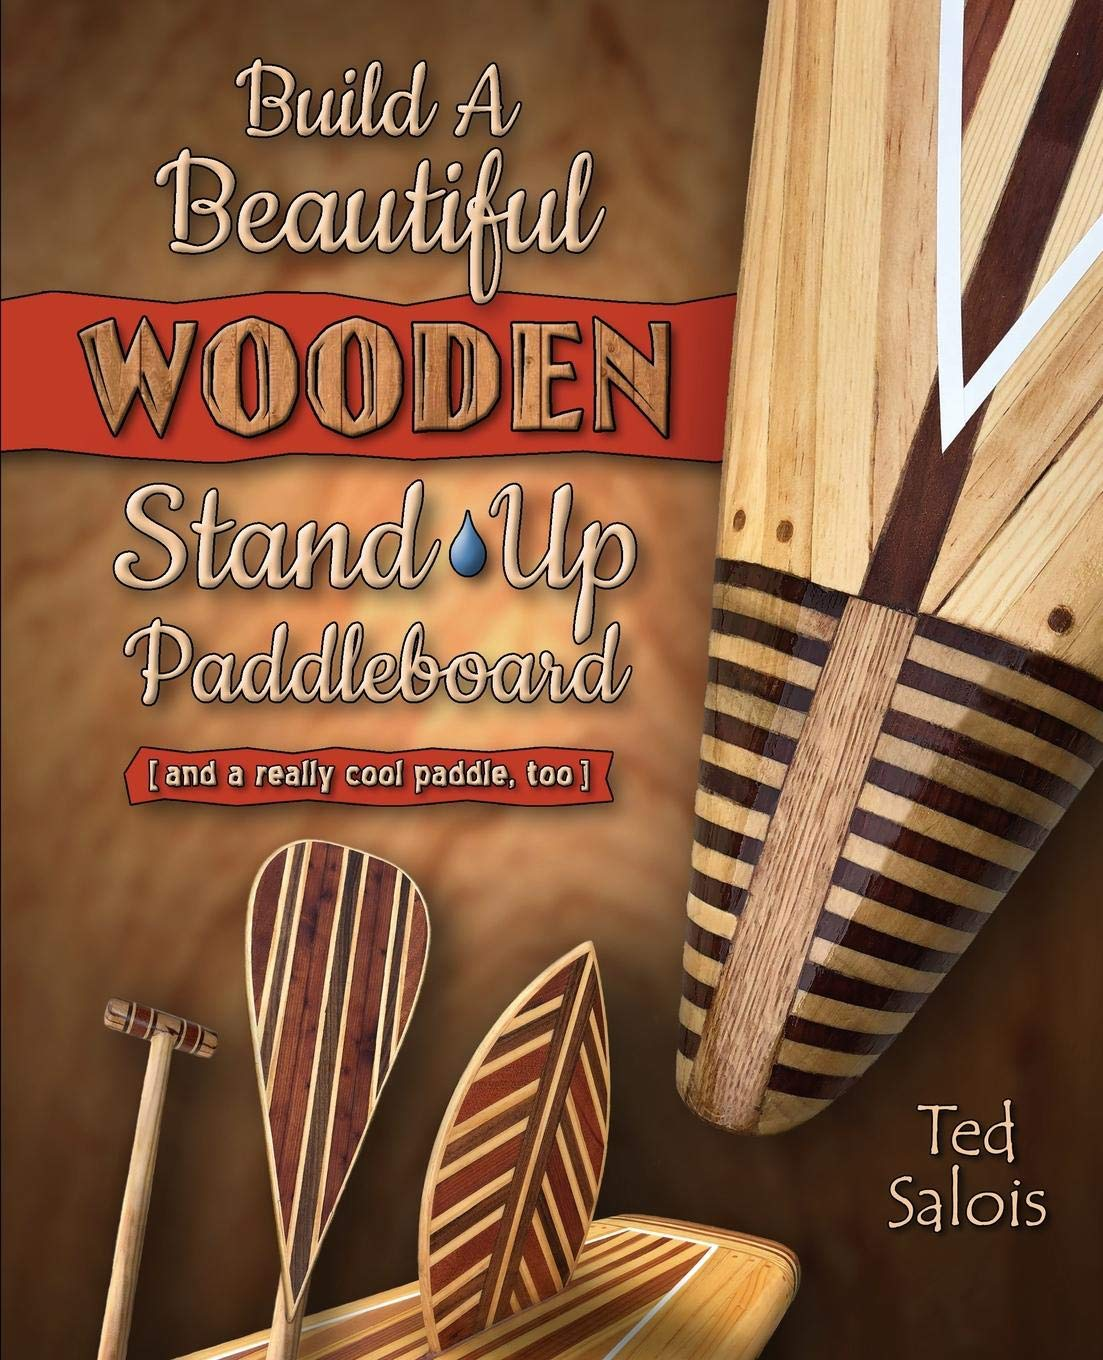 Build Beautiful Wooden Stand Up Paddleboard